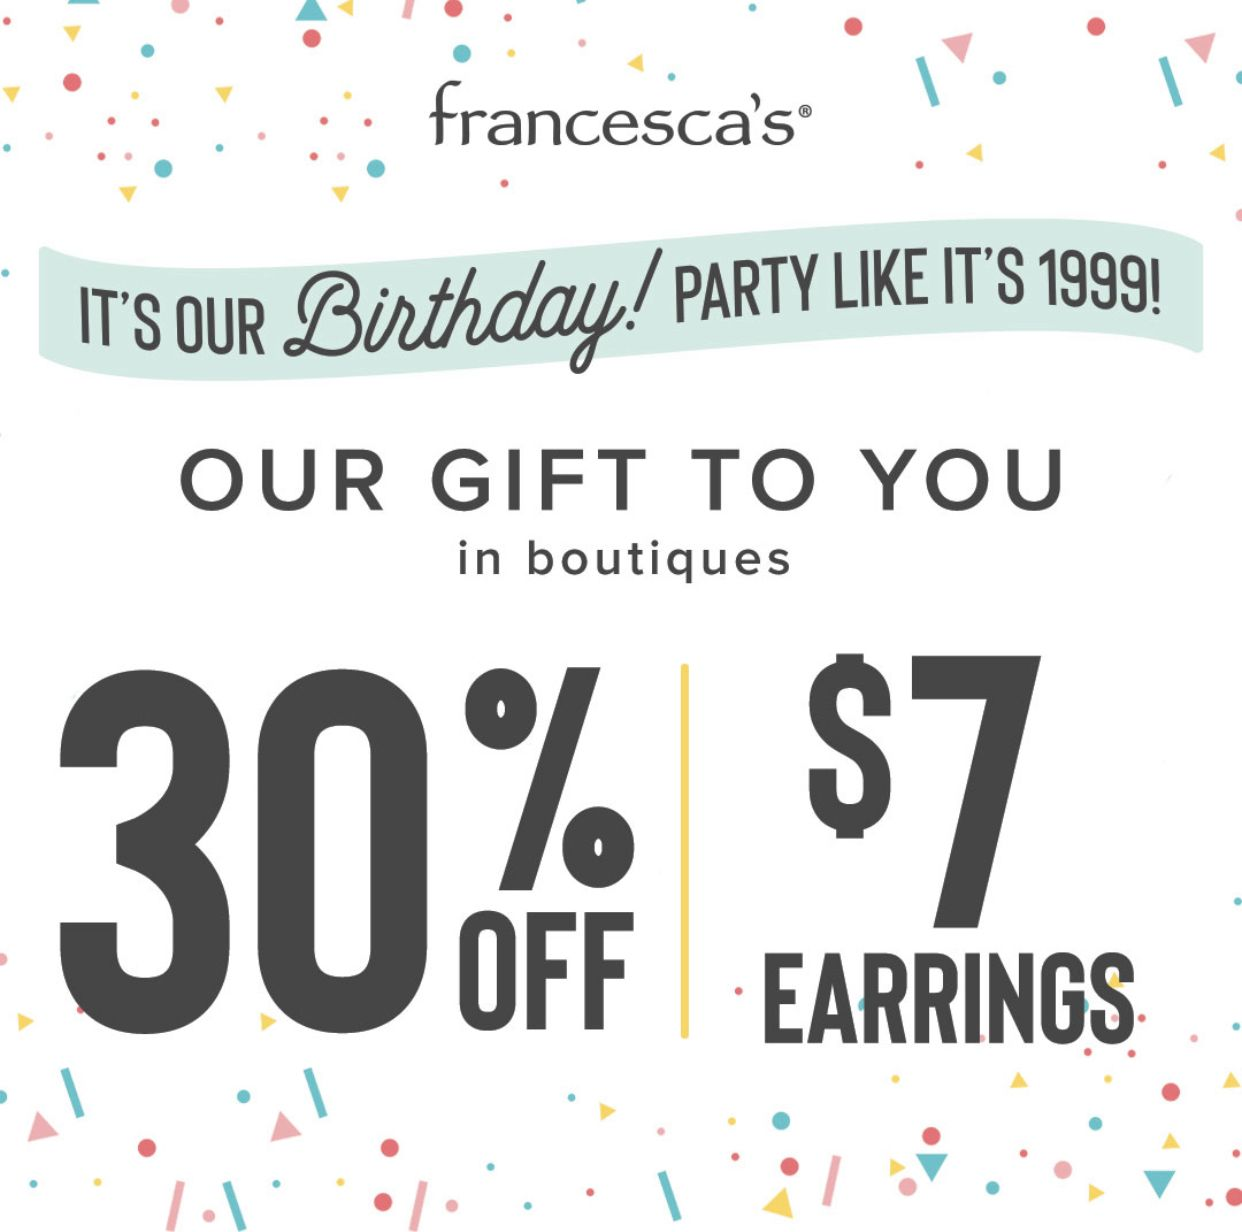 It's Our Birthday! Party Like It's 1999! from francesca's